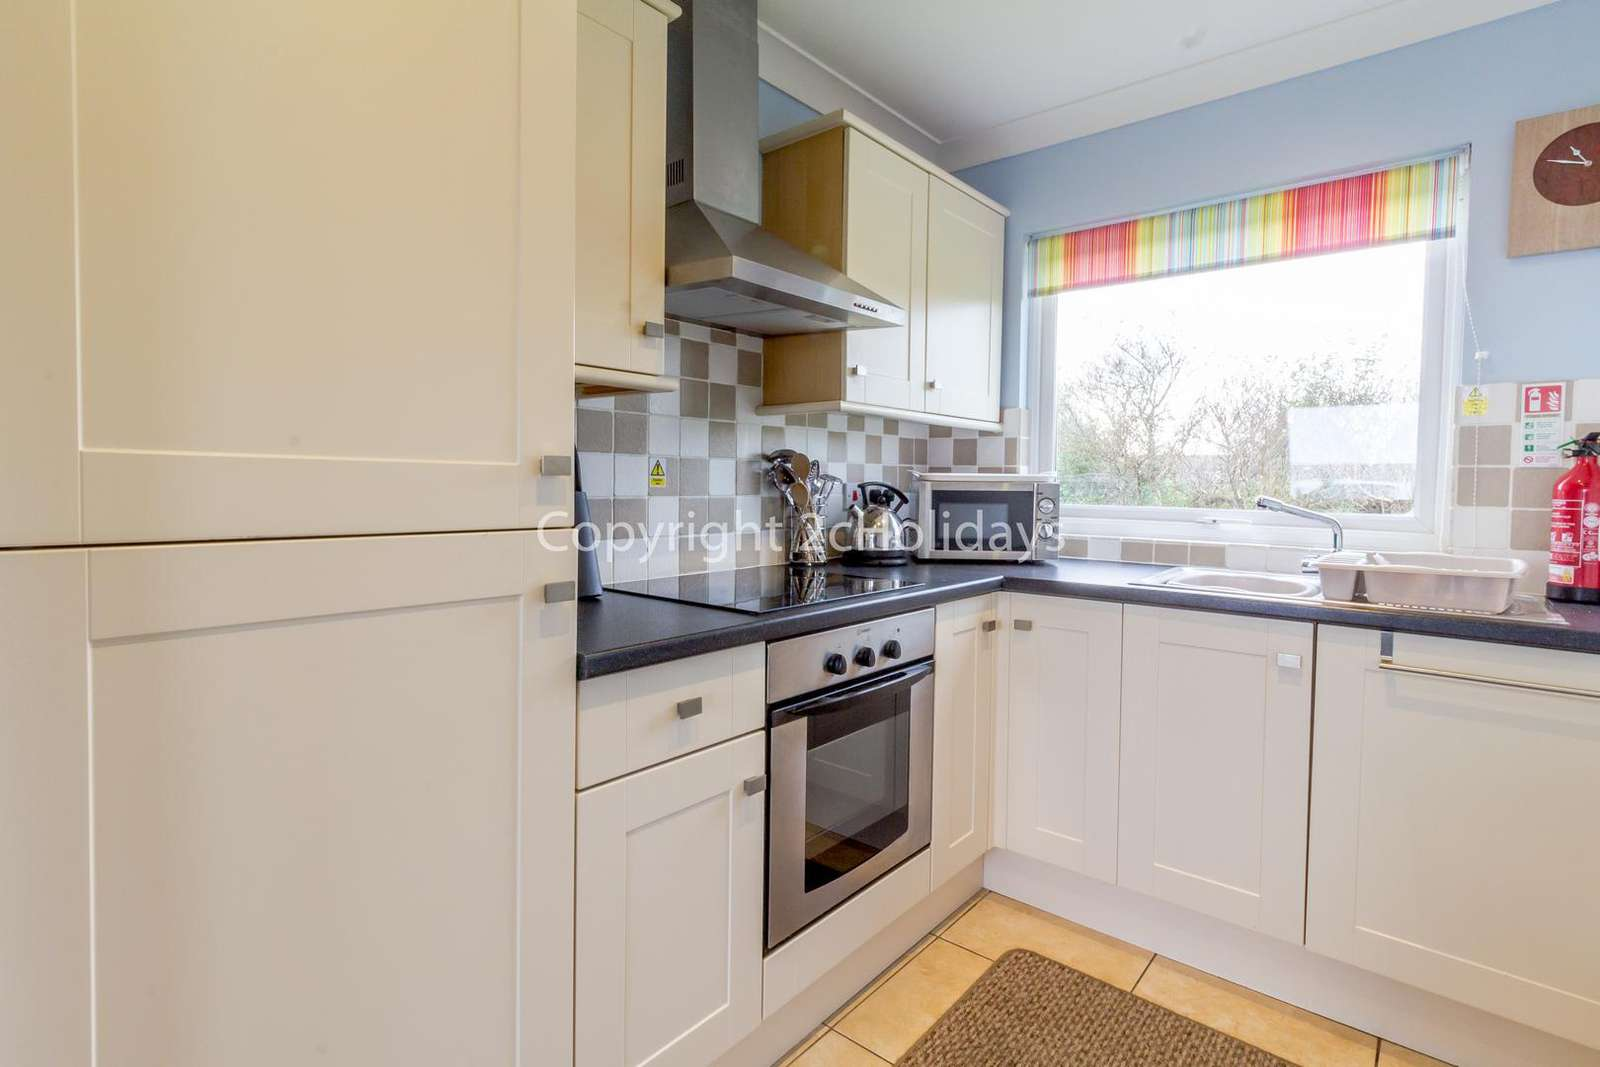 A lovely modern kitchen with a full size oven and washing machine!